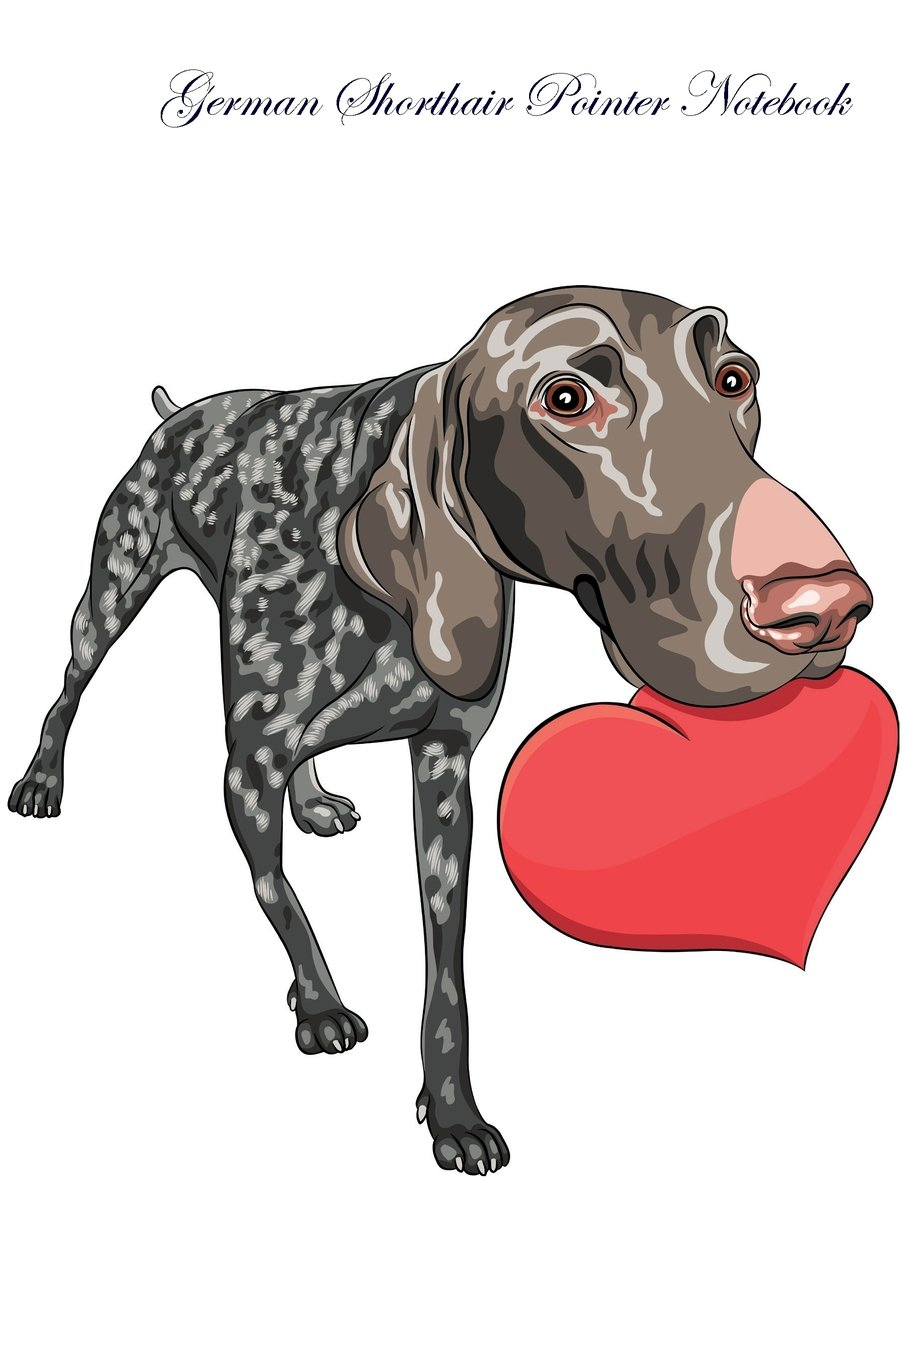 Download German Shorthair Pointer Notebook Record Journal, Diary, Special Memories, To Do List, Academic Notepad, and Much More pdf